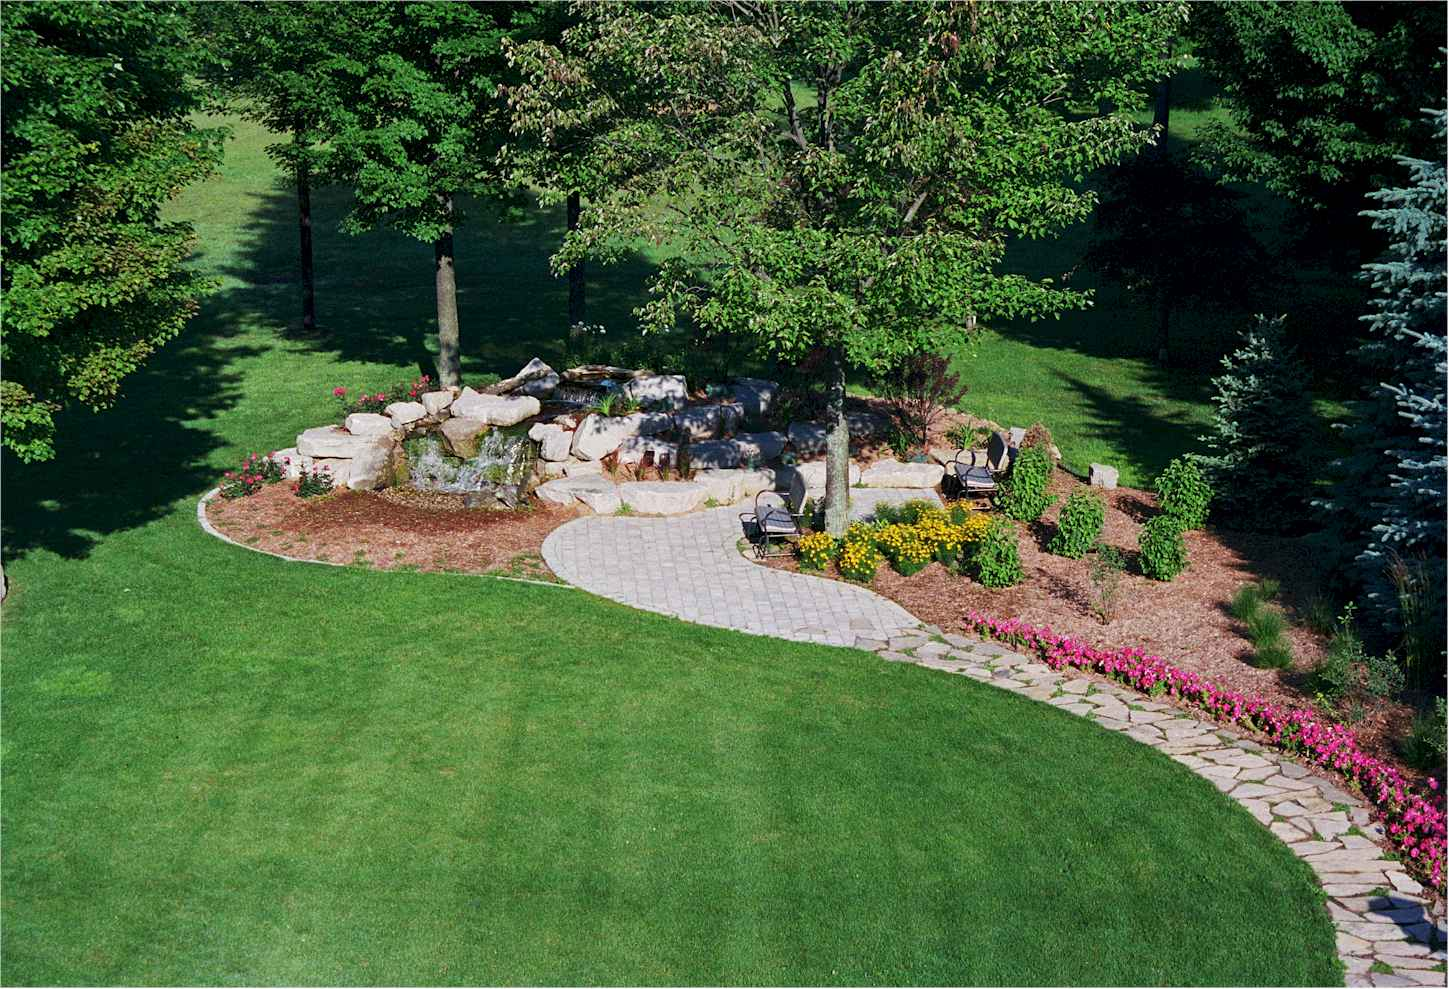 5 landscaping ideas to wow the neighbors for Yard landscaping